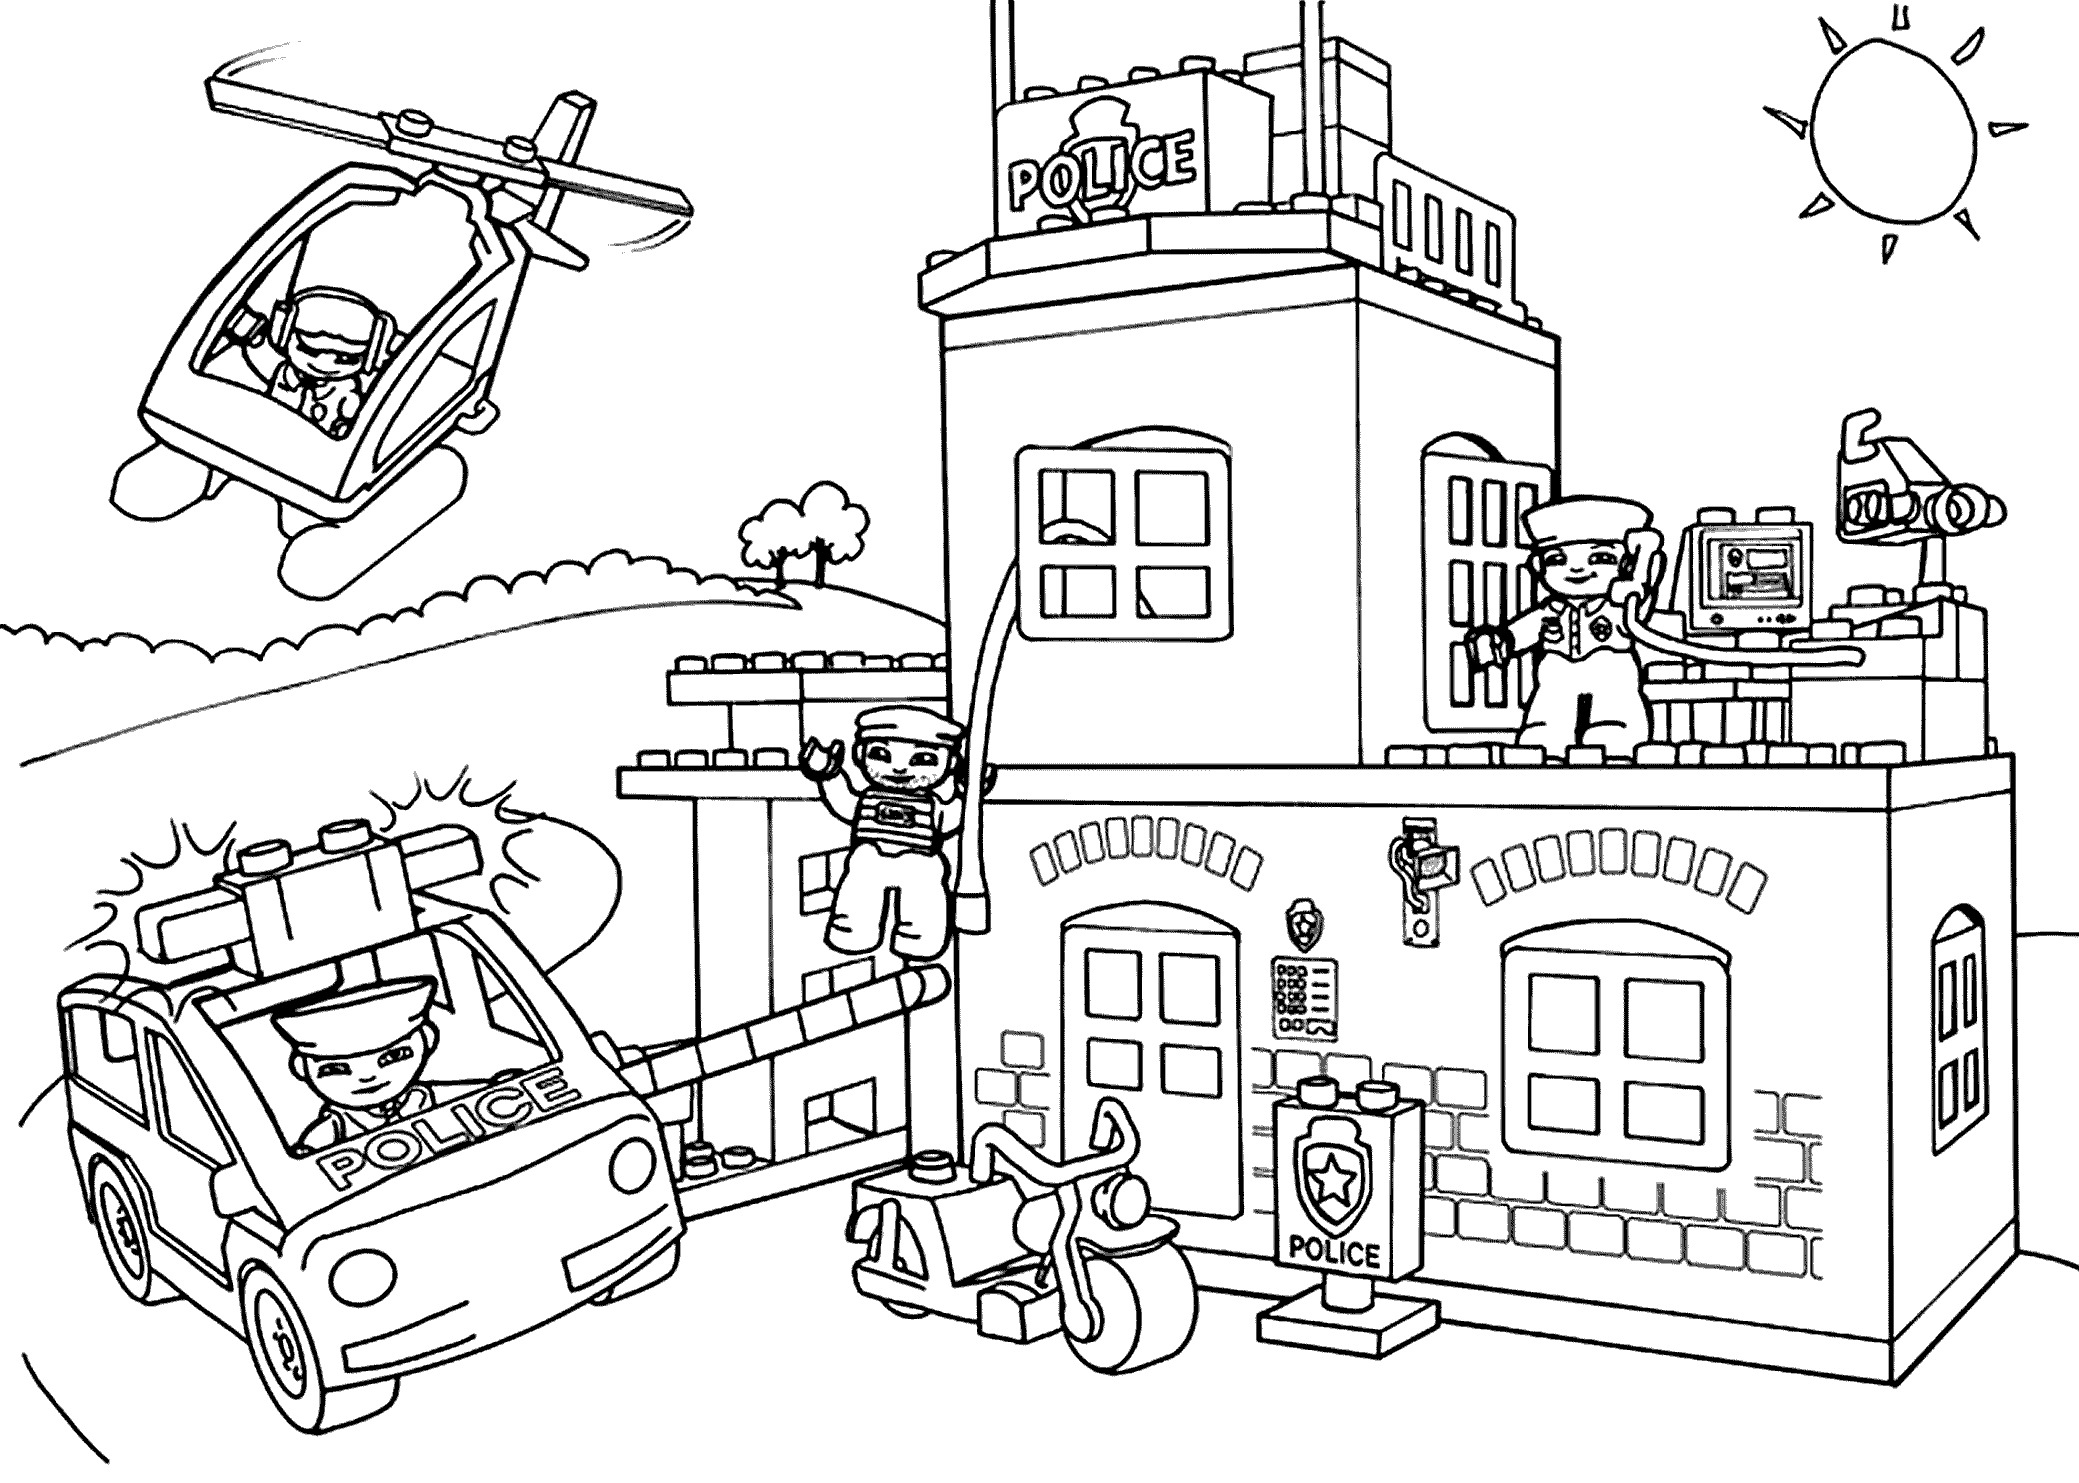 lego city coloring pages Download-Lego Police Coloring Pages Printable Best Lego City Undercover Ausmalbilder 8-s